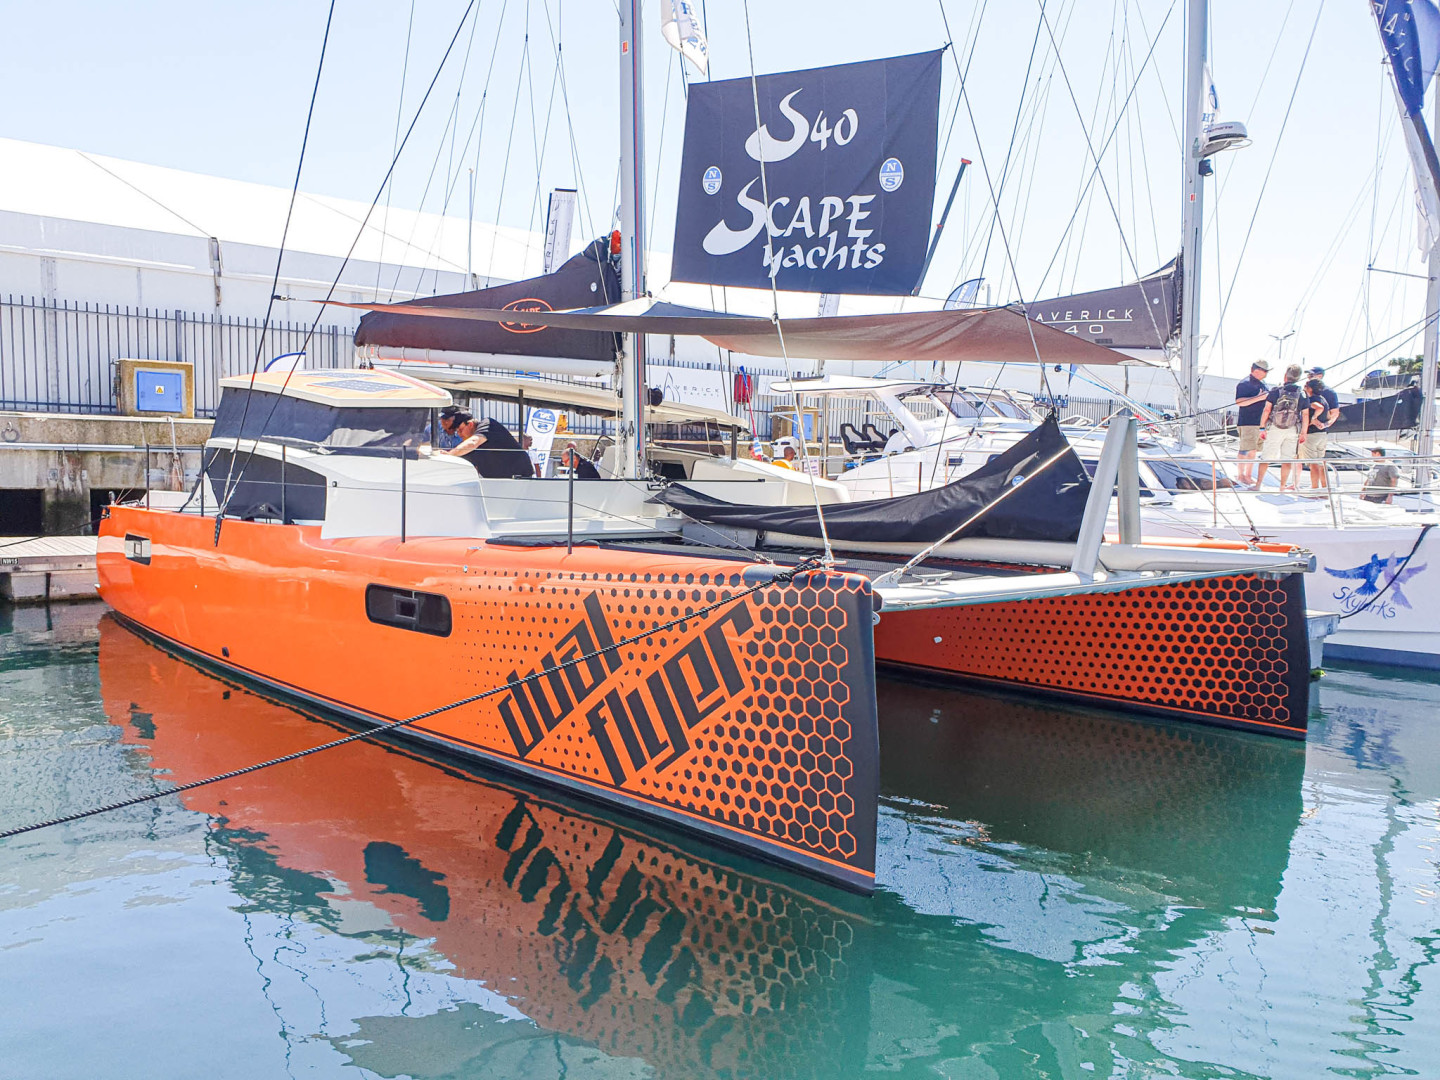 Scape-40 Sport 2019-Dual Flyer Durban-South Africa-2019 Scape Yachts 40 Sport 05-1621024 | Thumbnail